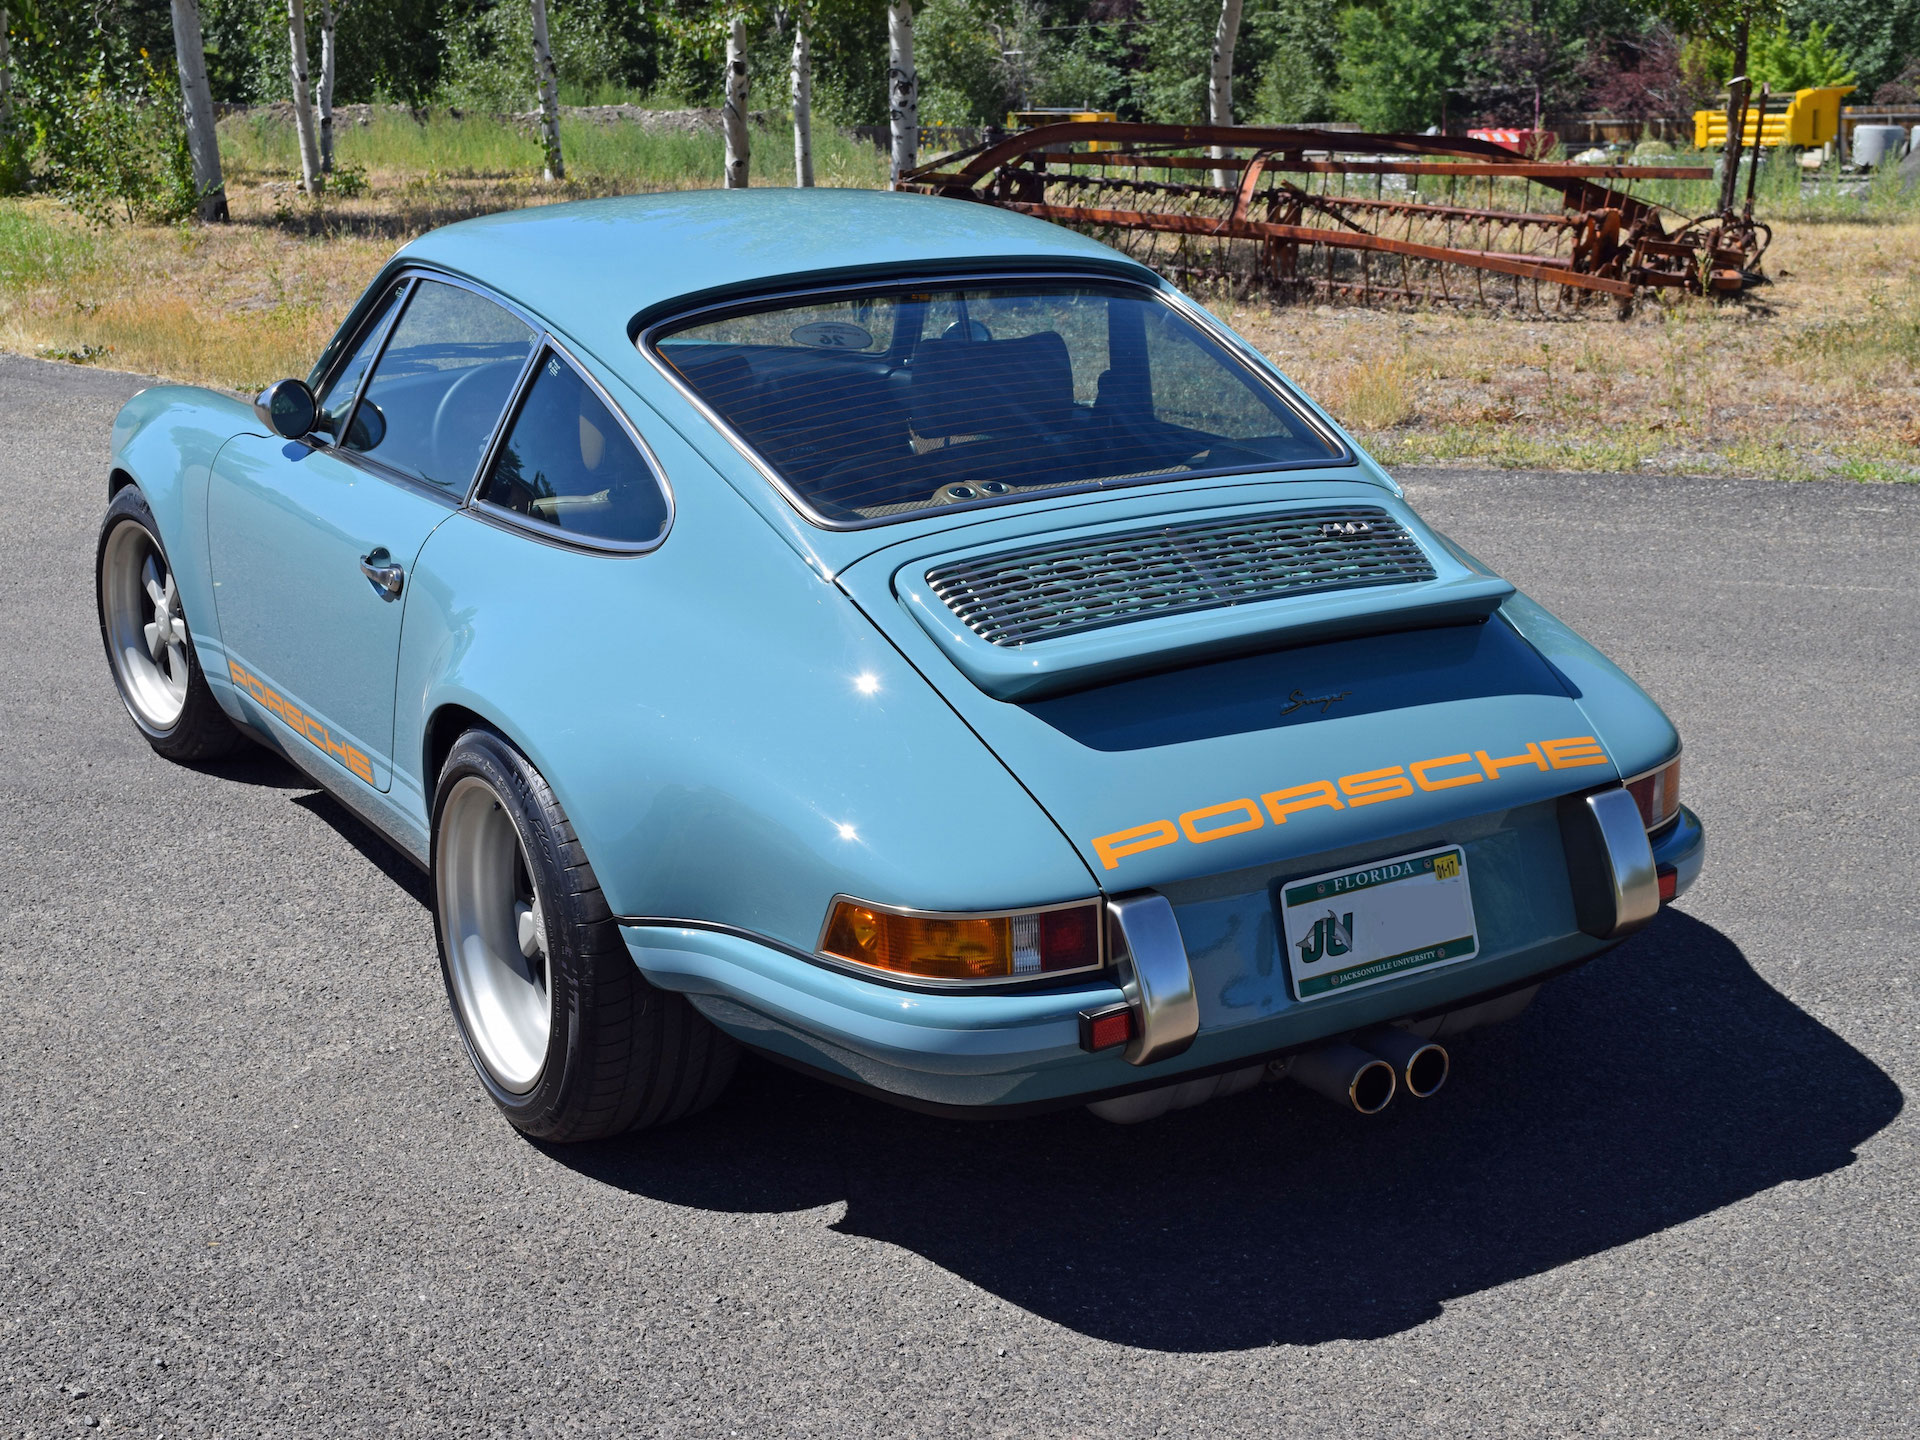 Driving A 500 000 Singer Customized Porsche 911 Ruins